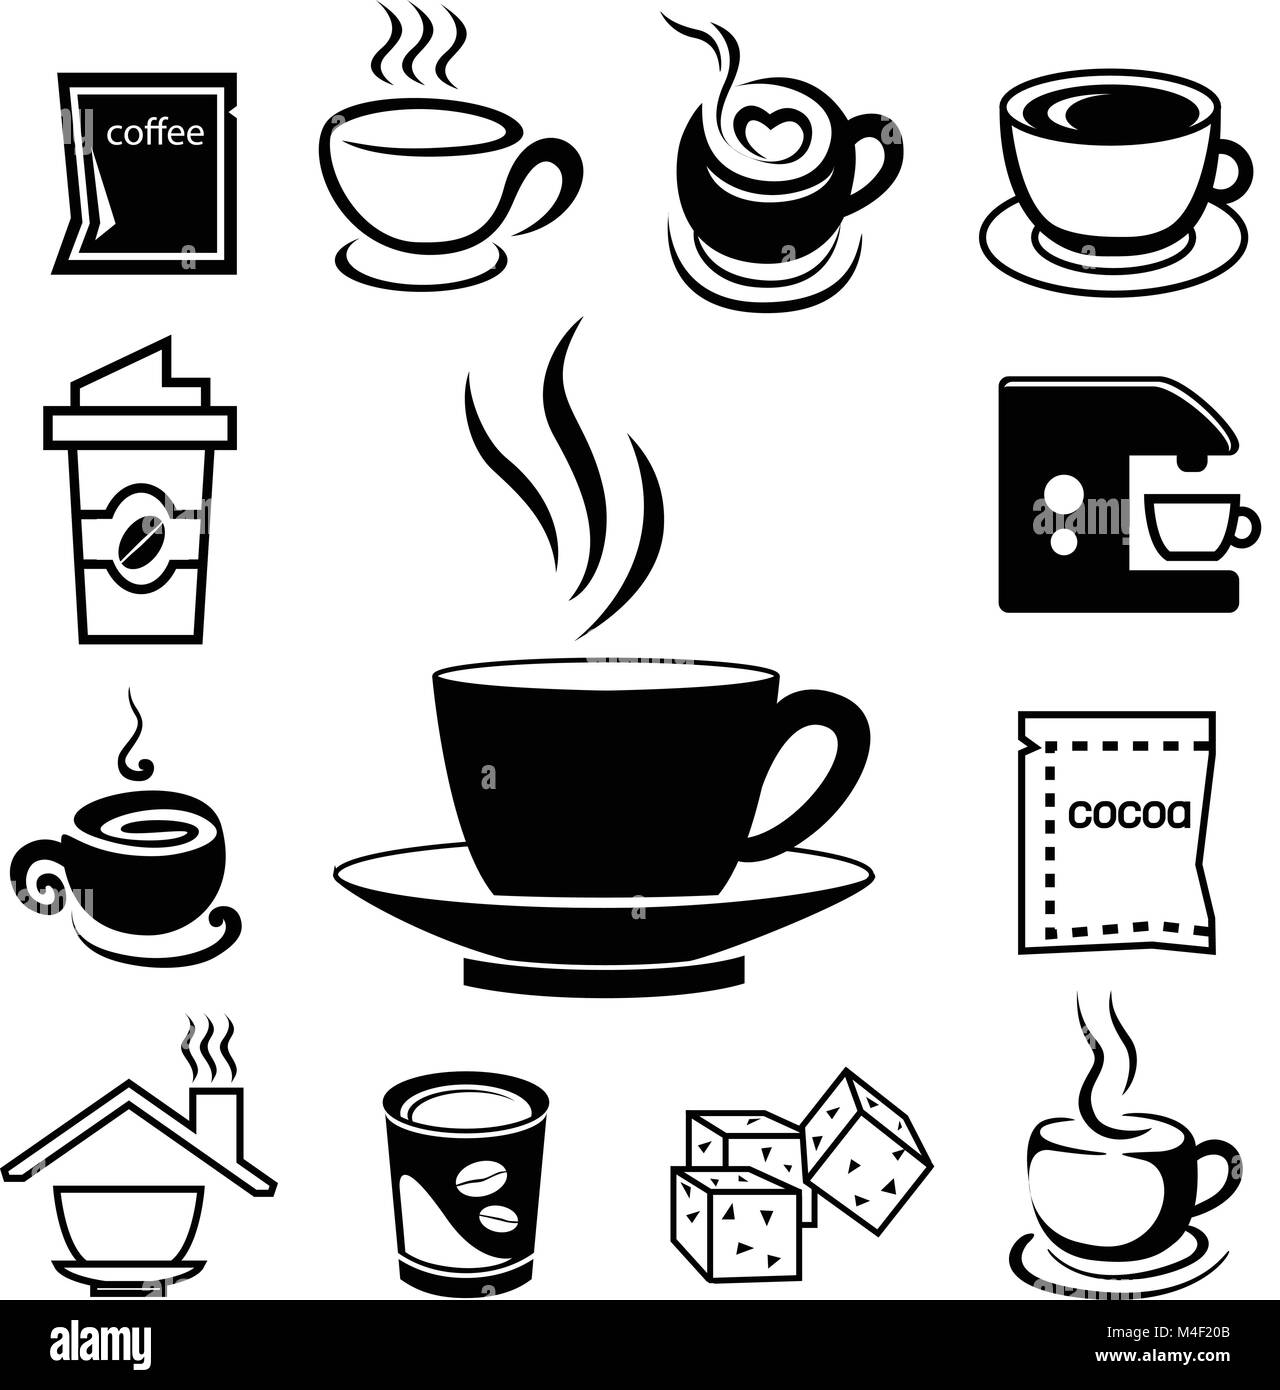 coffee icon set with accessory and ingredient of glass, cup, bean, sugar, bag, mug, grinder, package, spoon, cake, Stock Vector